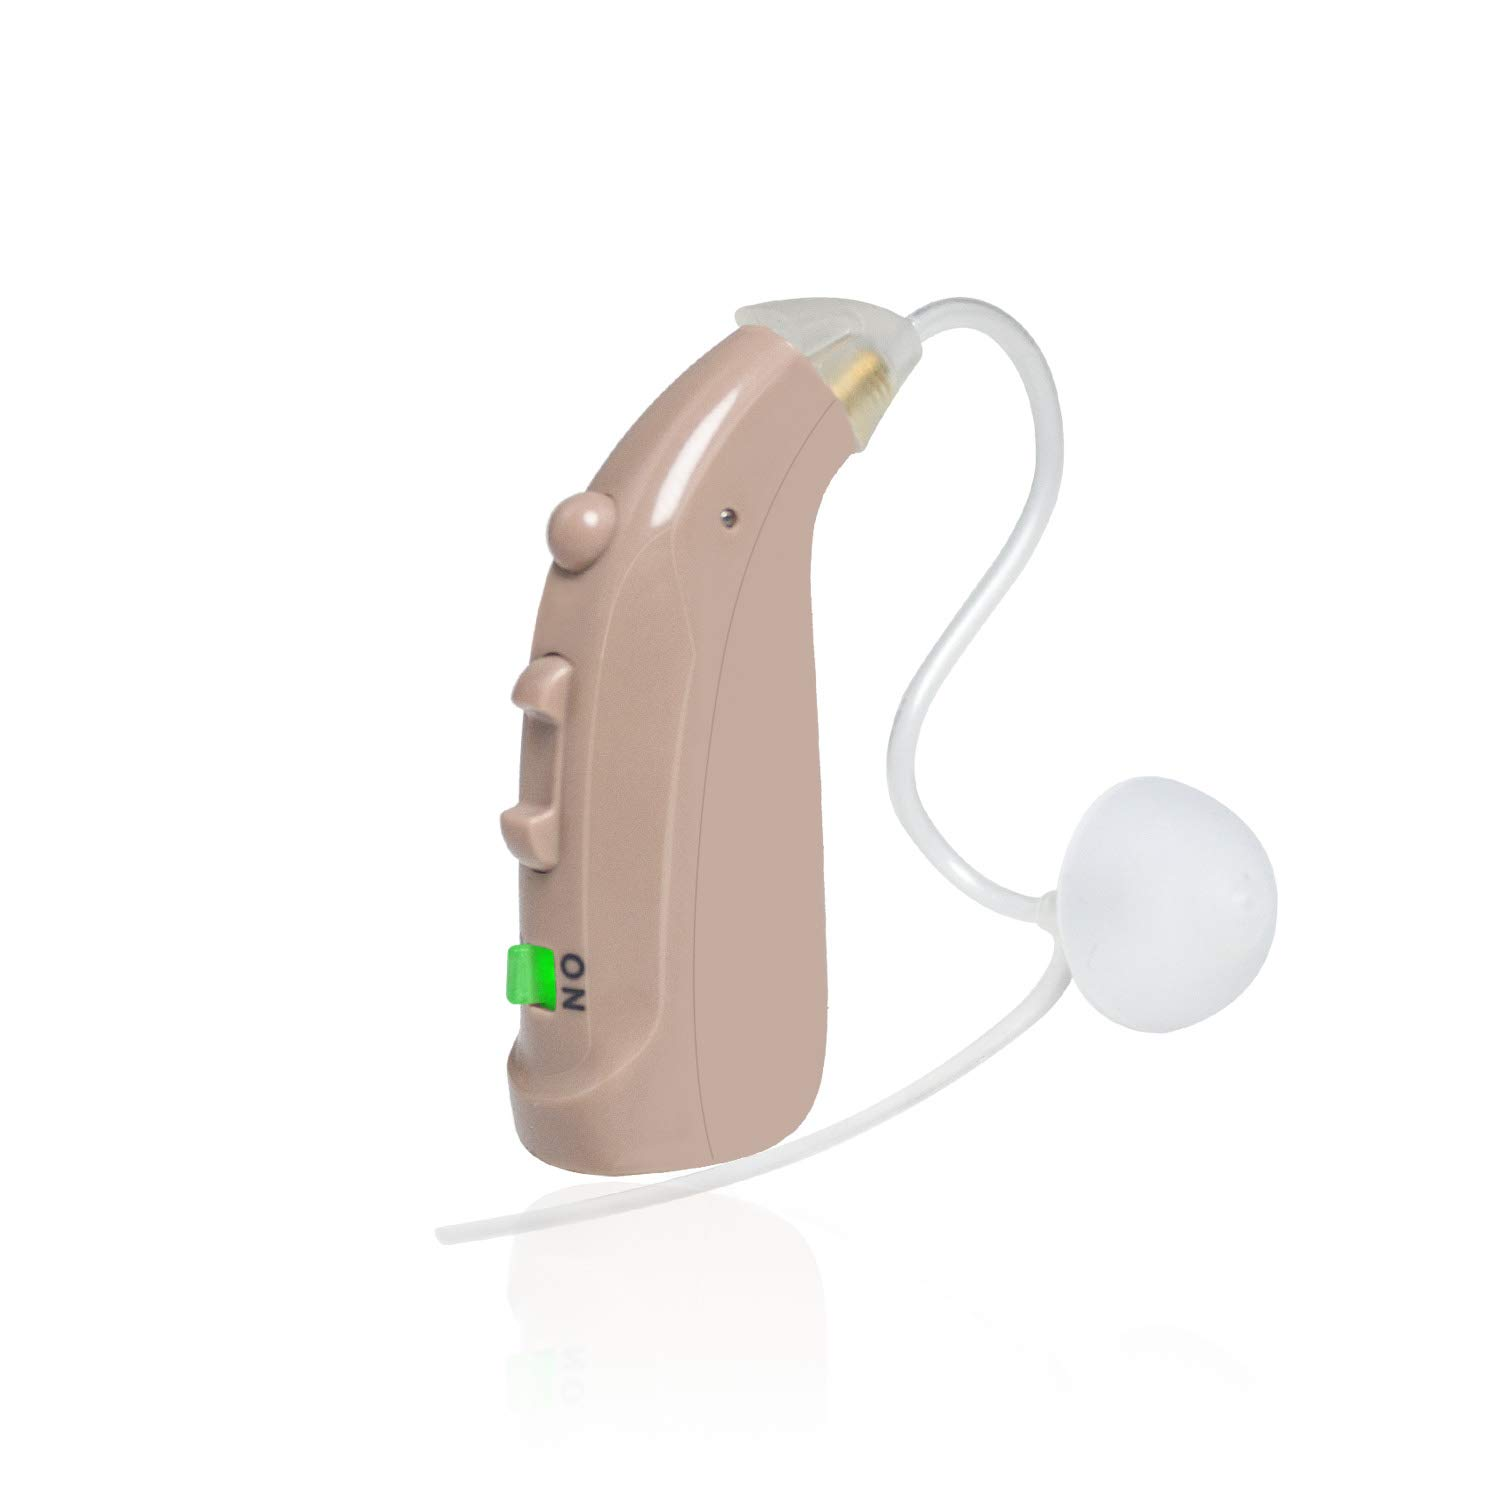 Banglijian Hearing Amplifier Designed Adjustable Tube to Fit Both Ears. by Banglijian